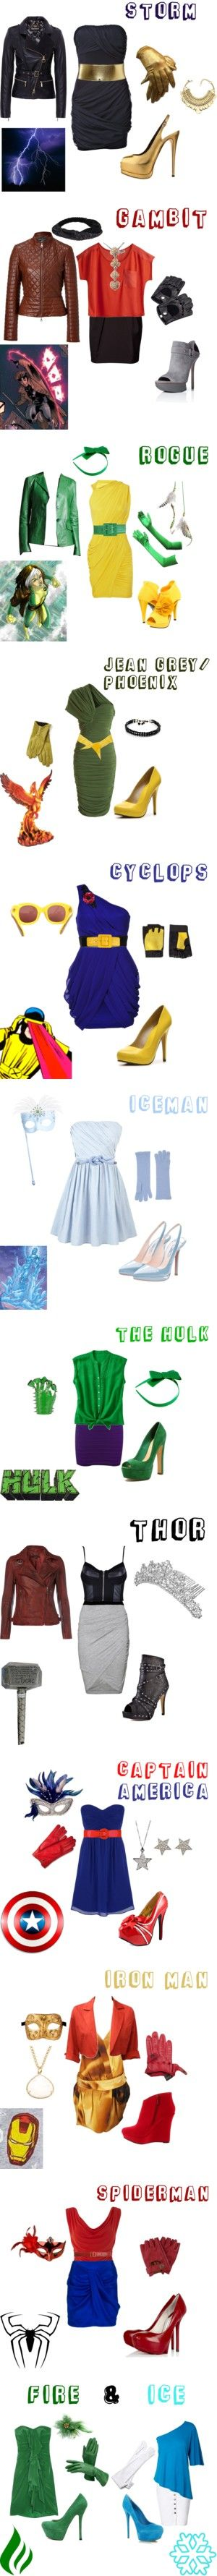 Superhero Outfits by adinam518 on Polyvore featuring Giuseppe Zanotti, Sequin, Barbour, Hasselblad, storm, superhero, MANGO, MTWTFSS Weekday, Salvatore Ferragamo and Camilla Skovgaard